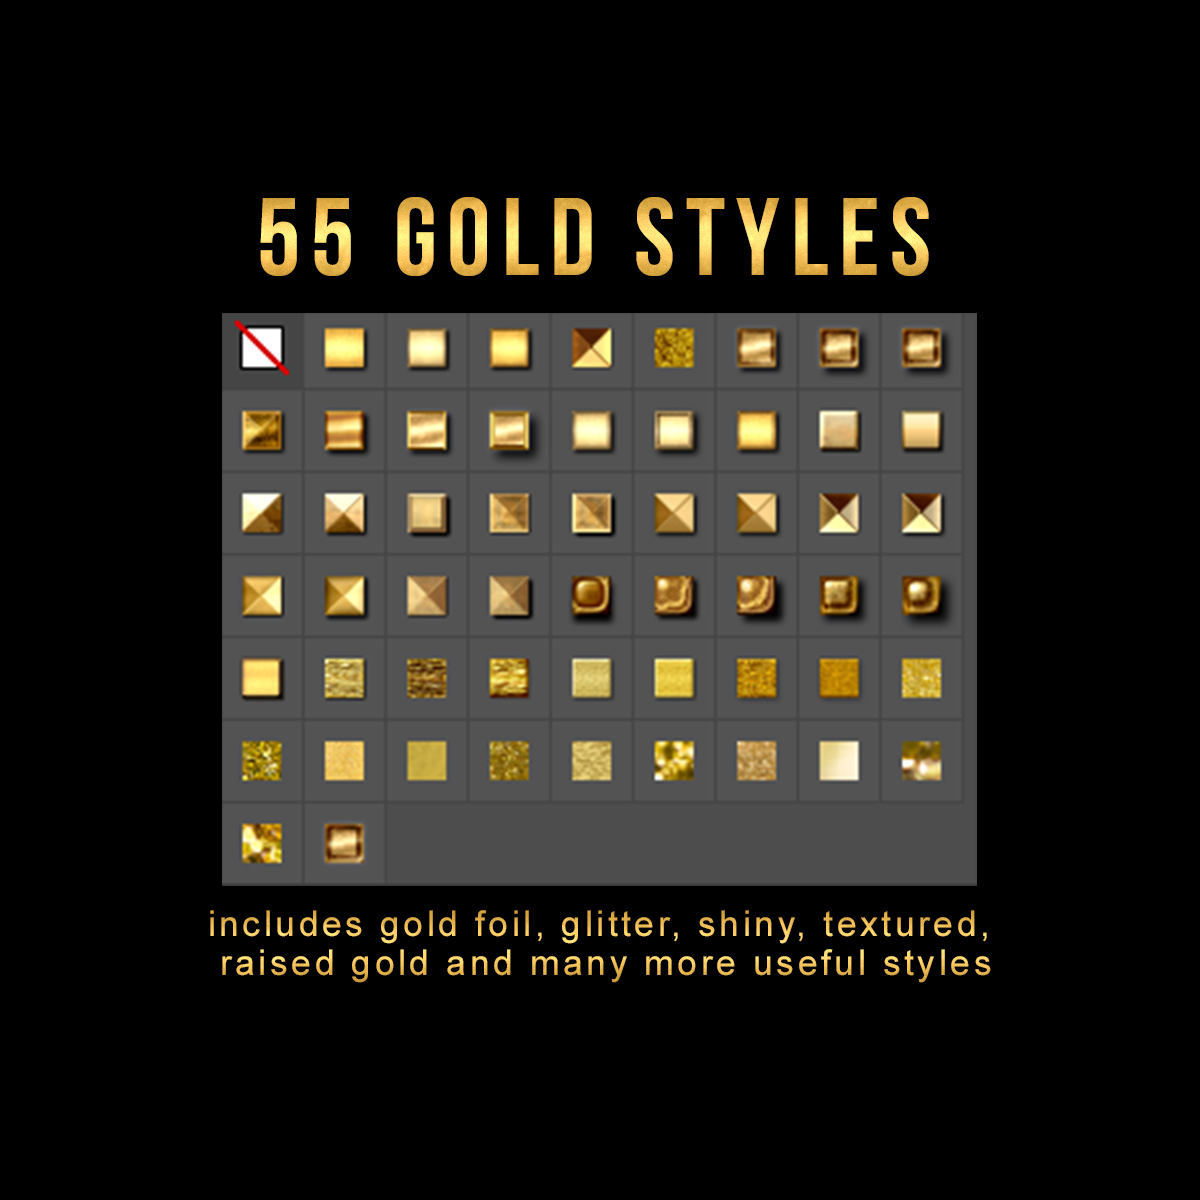 55 Photoshop Text Effects, Gold Foil Effect, Gold Stamp, Embossed Gold, ASL FX Styles, One Click FX example image 2